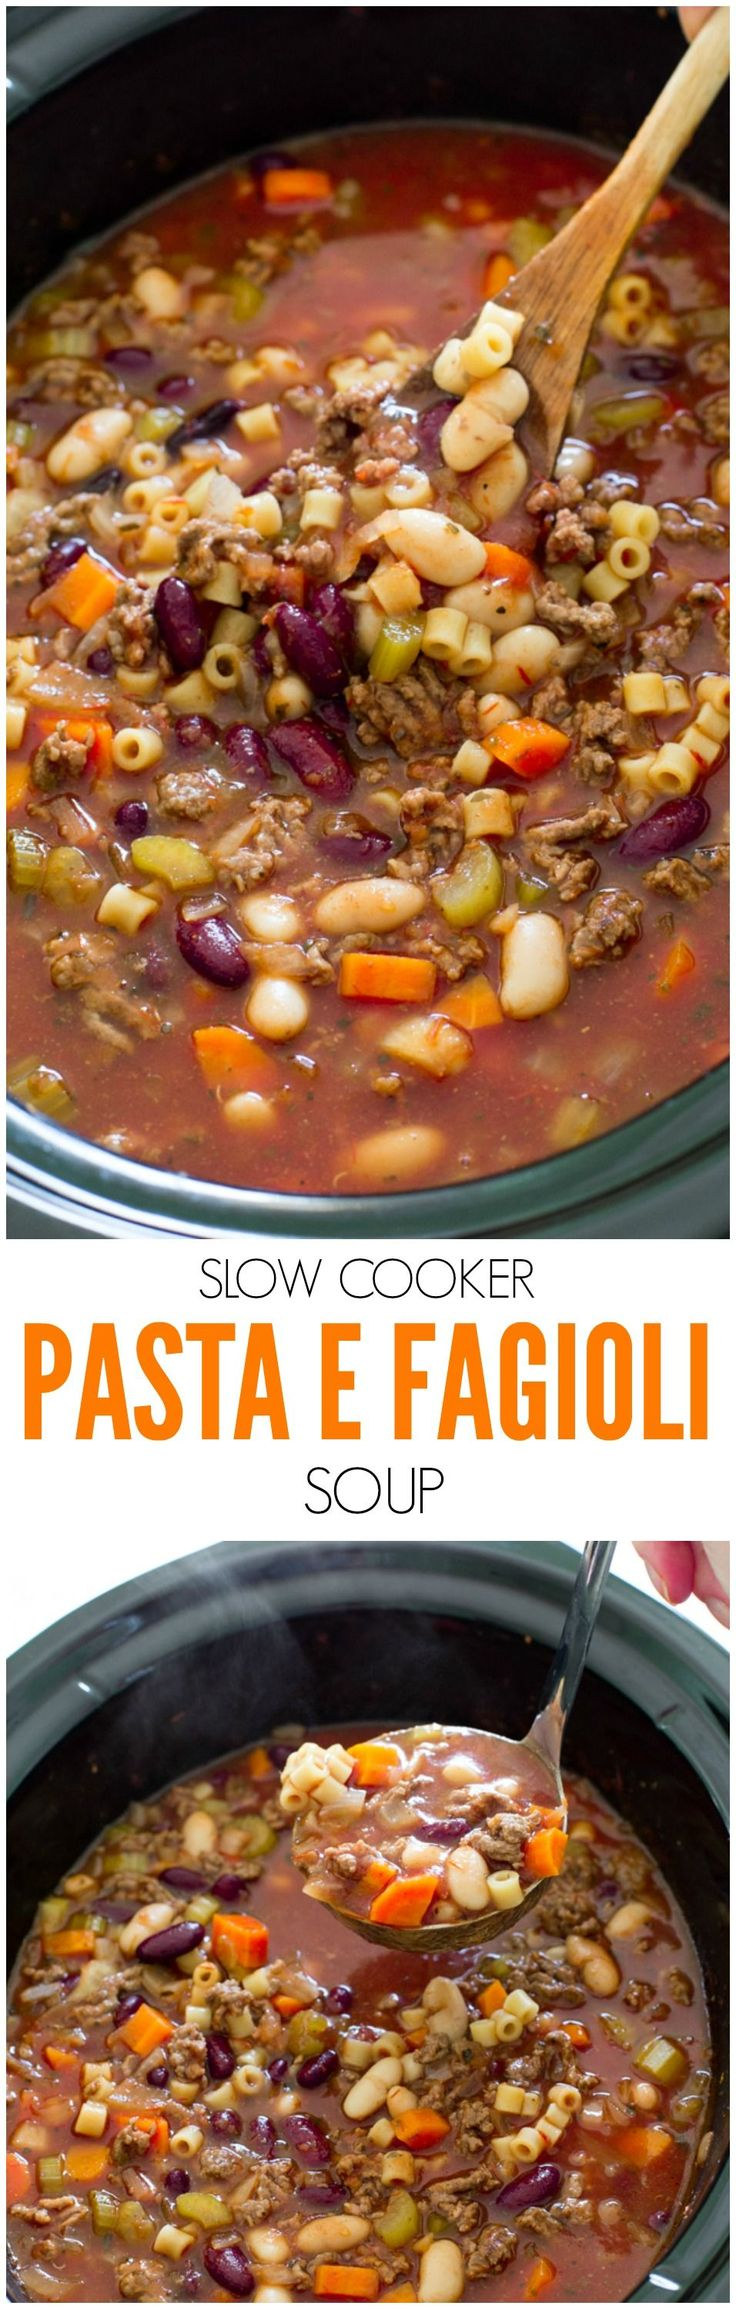 For Phase 1 (omit oil, serve with an extra 1/2 grain serving) and Phase 3. Use phase-appropriate pasta and 2 cups canned beans to serve 8. Rich, hearty and loaded with veggies and meat. A perfect, comforting soup for Fall!